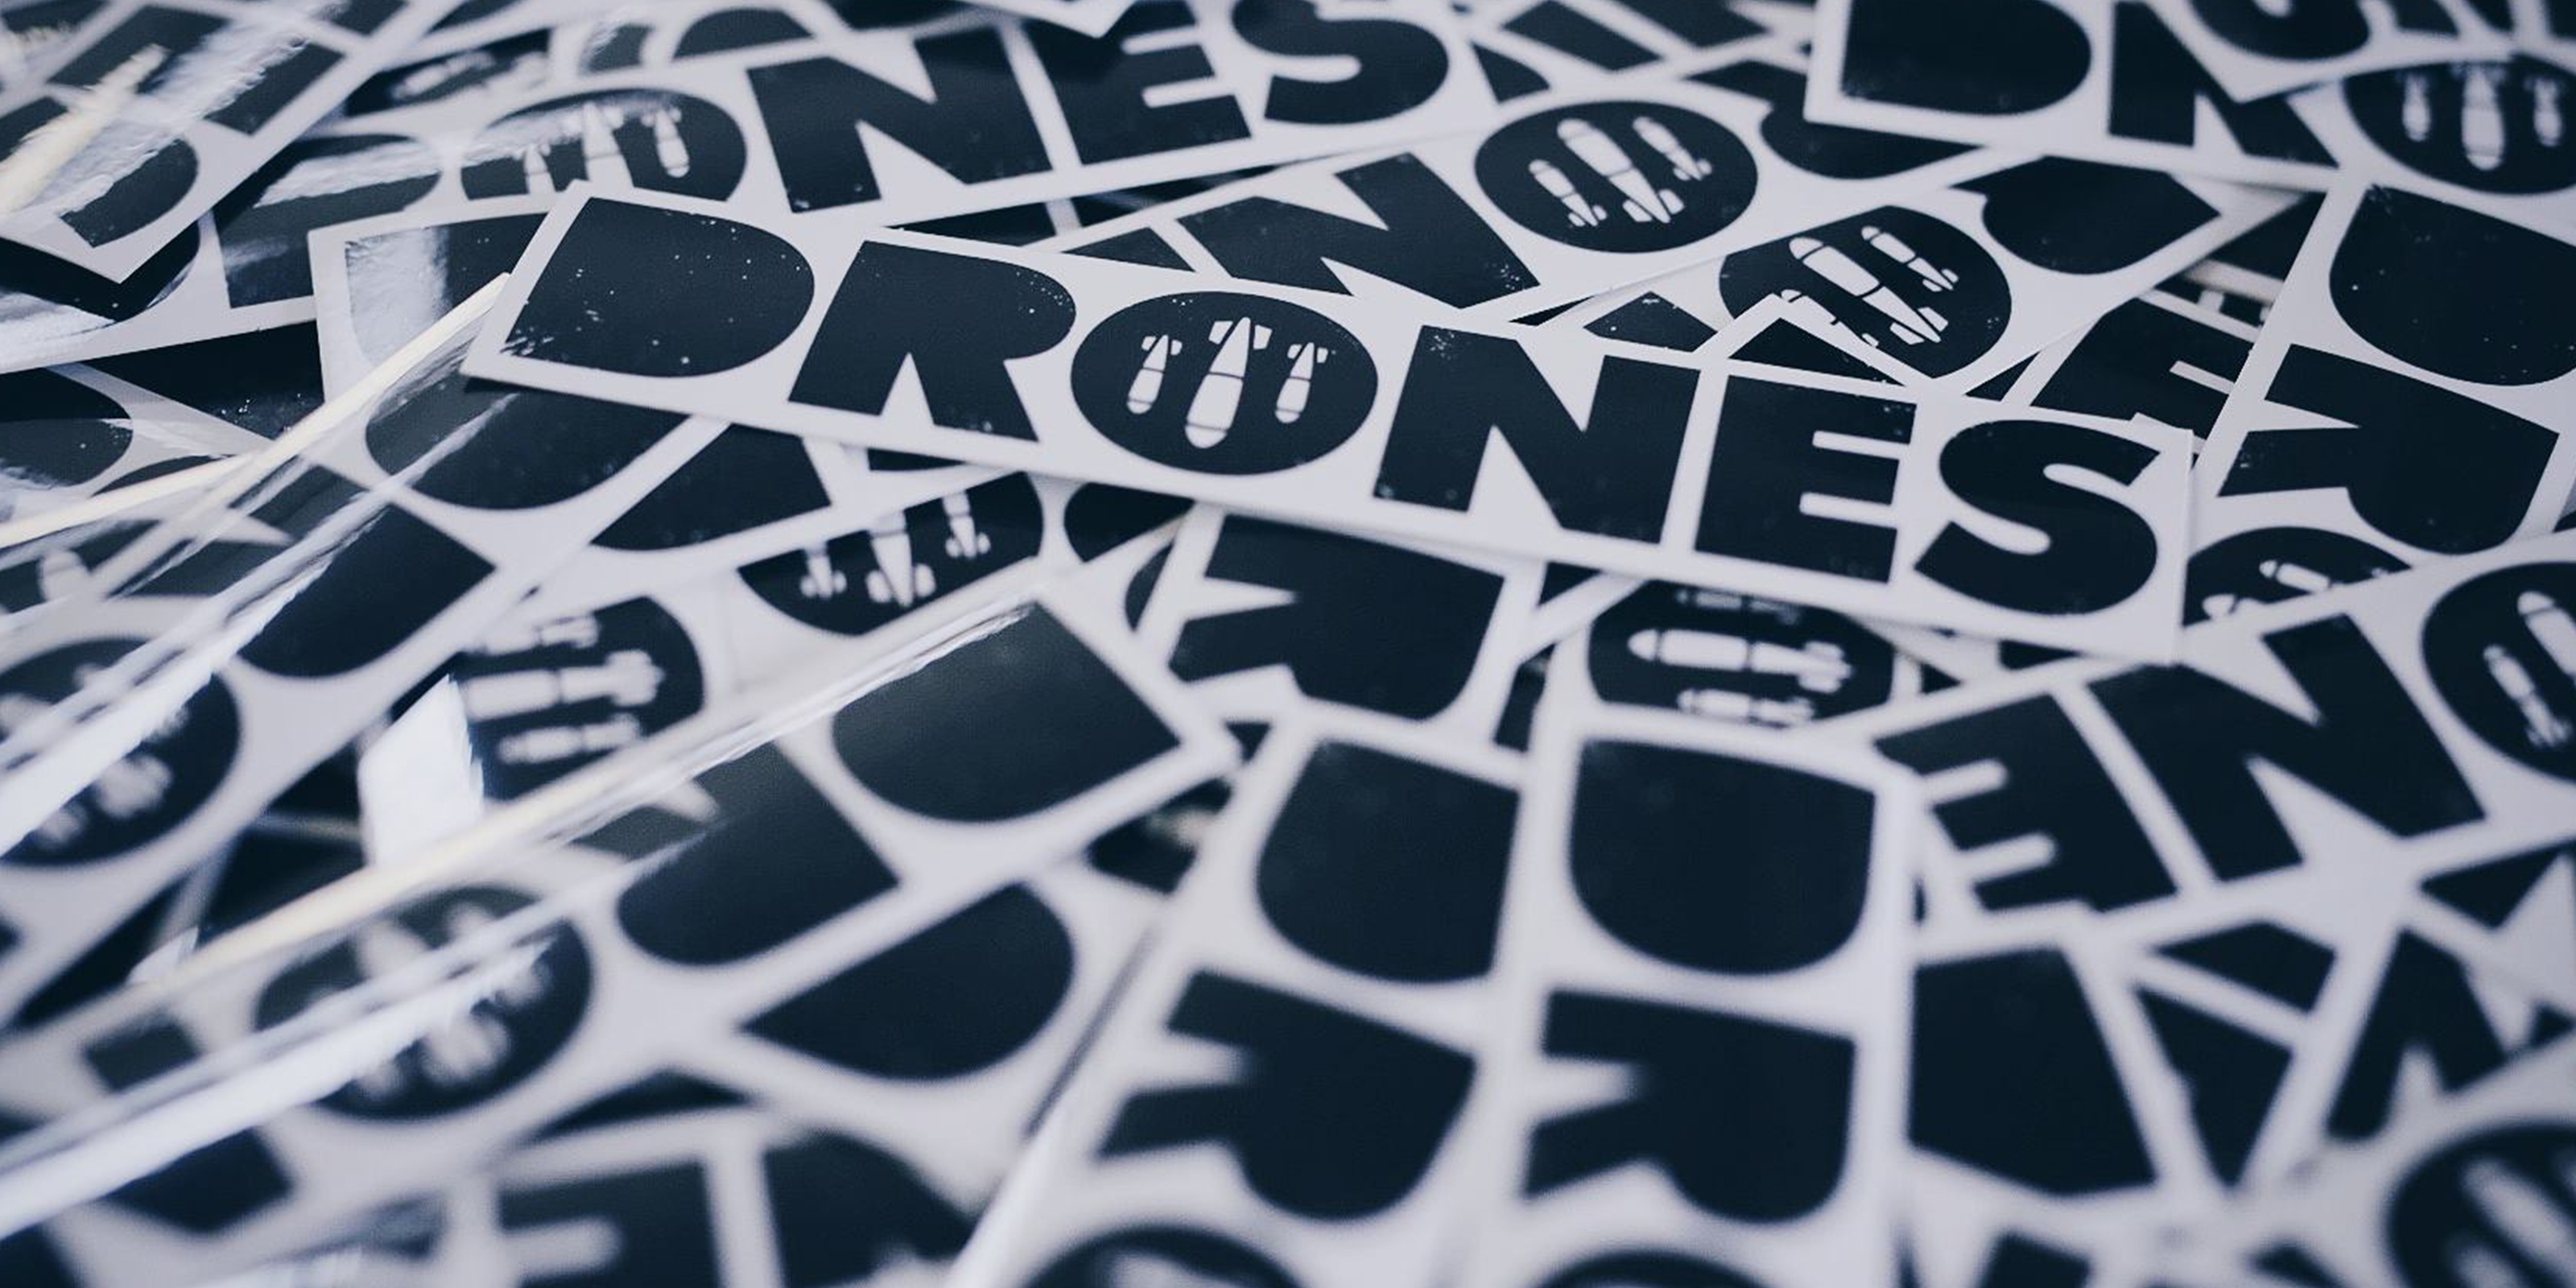 Drones Stickers